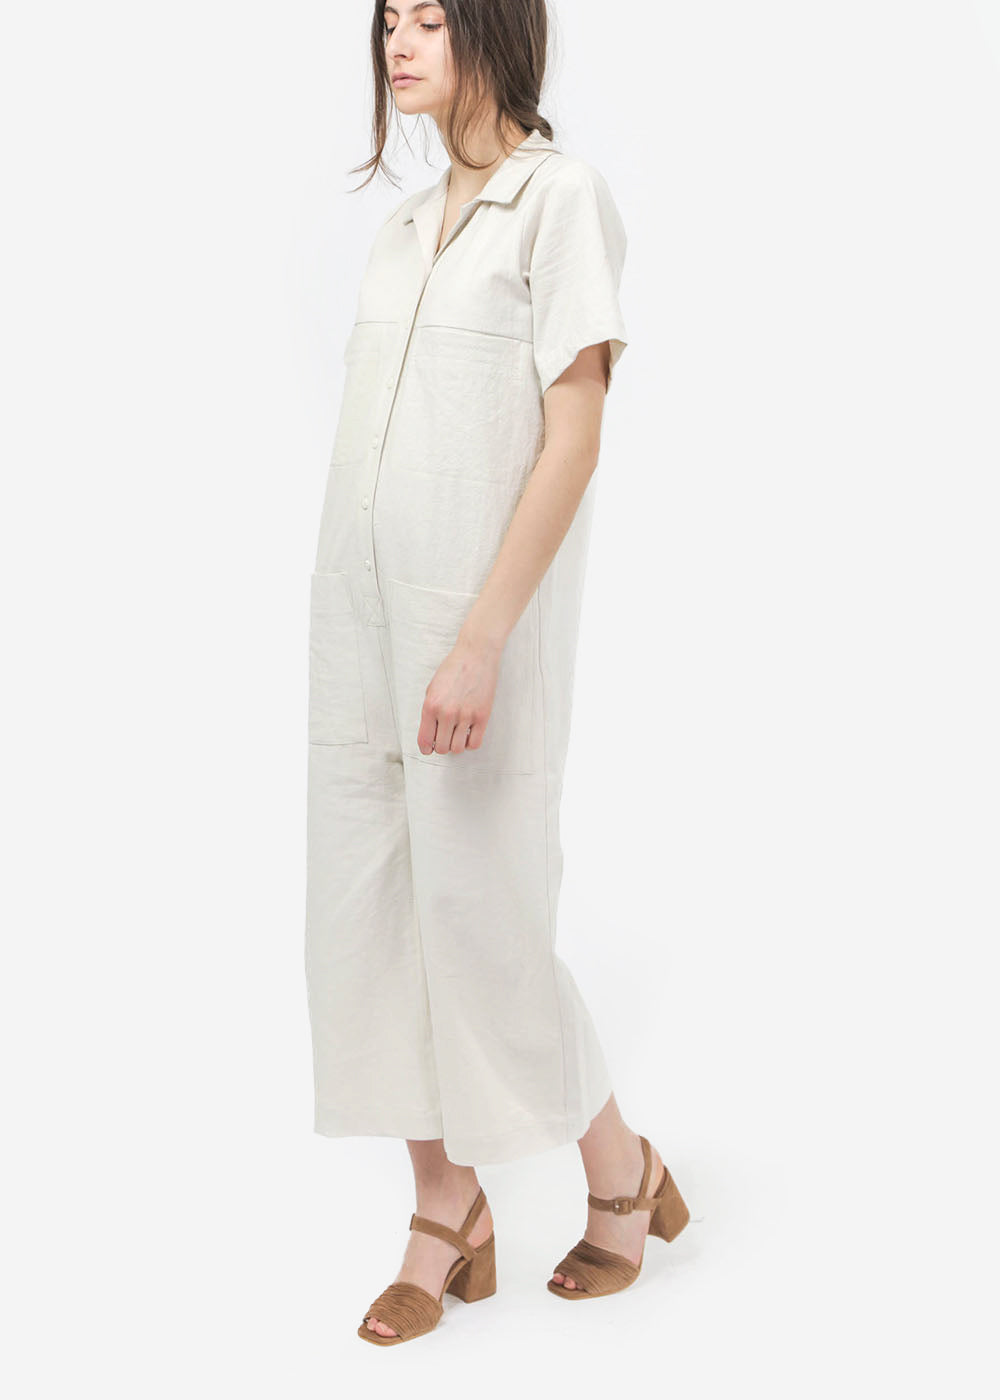 Ilana Kohn Clay Mabel Coverall — New Classics Studios